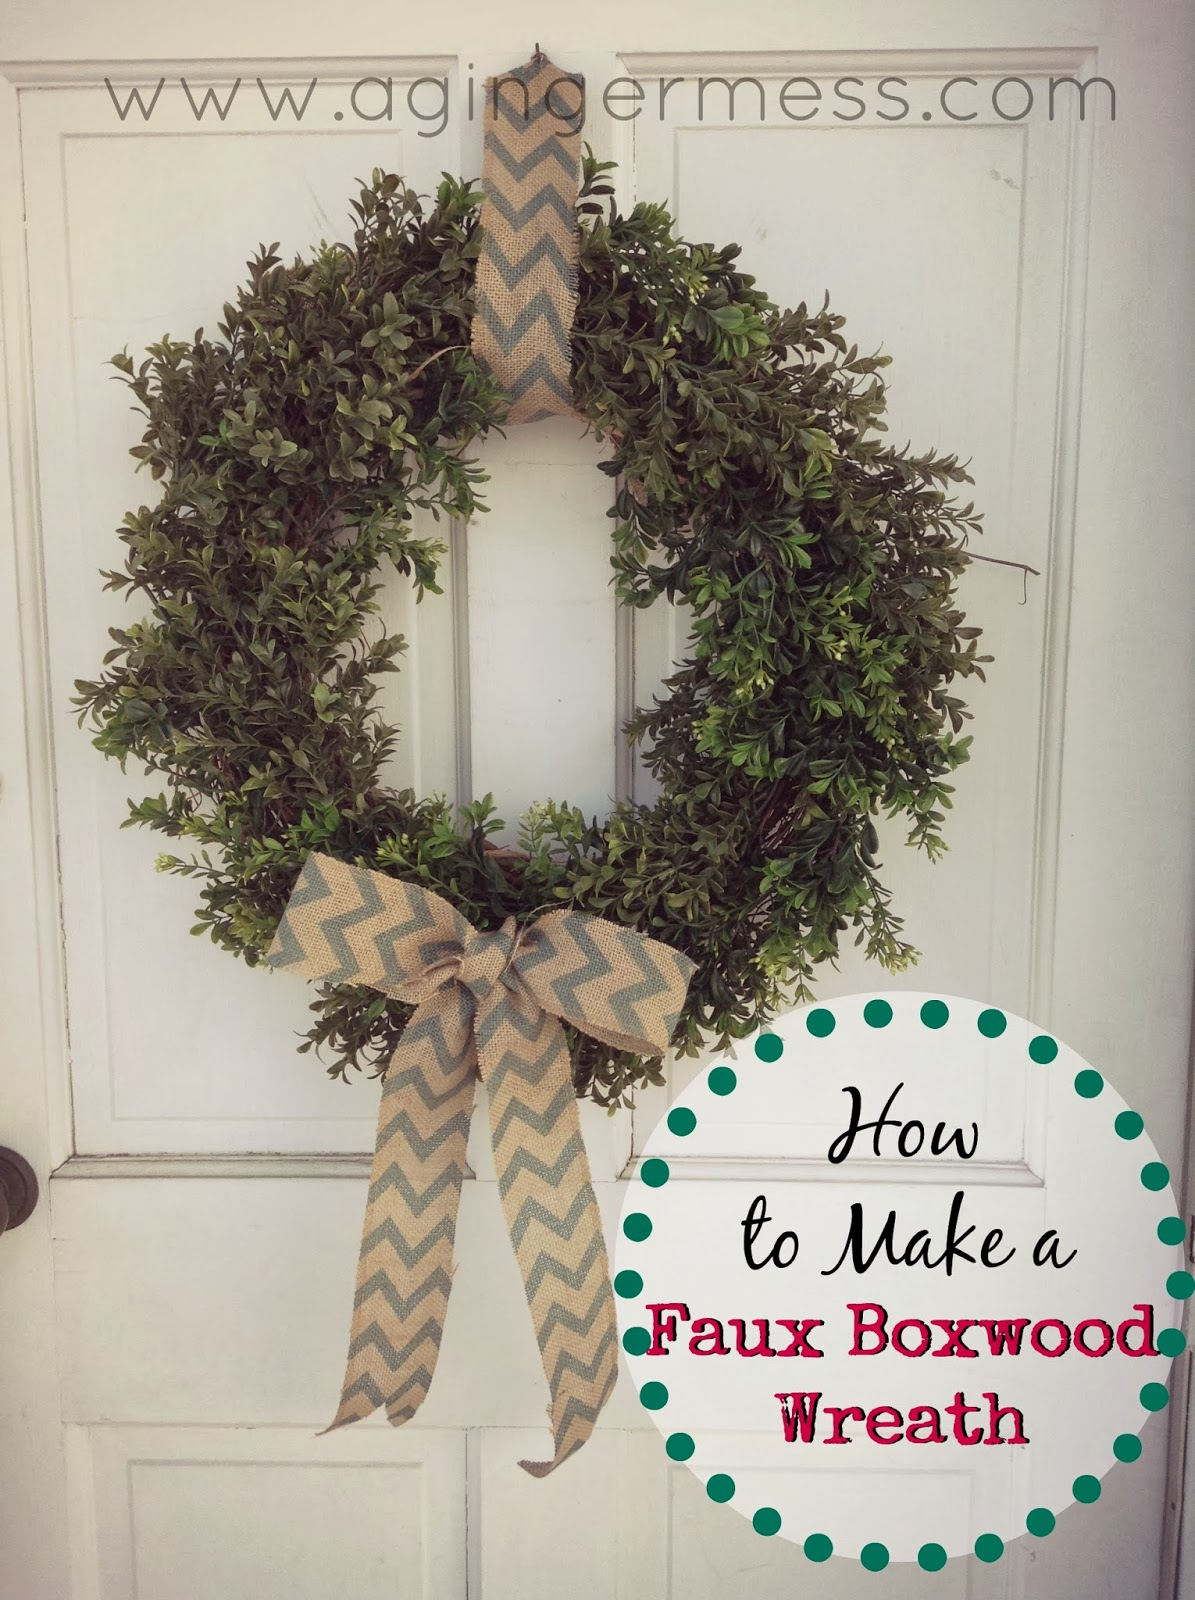 Faux Boxwood Wreath